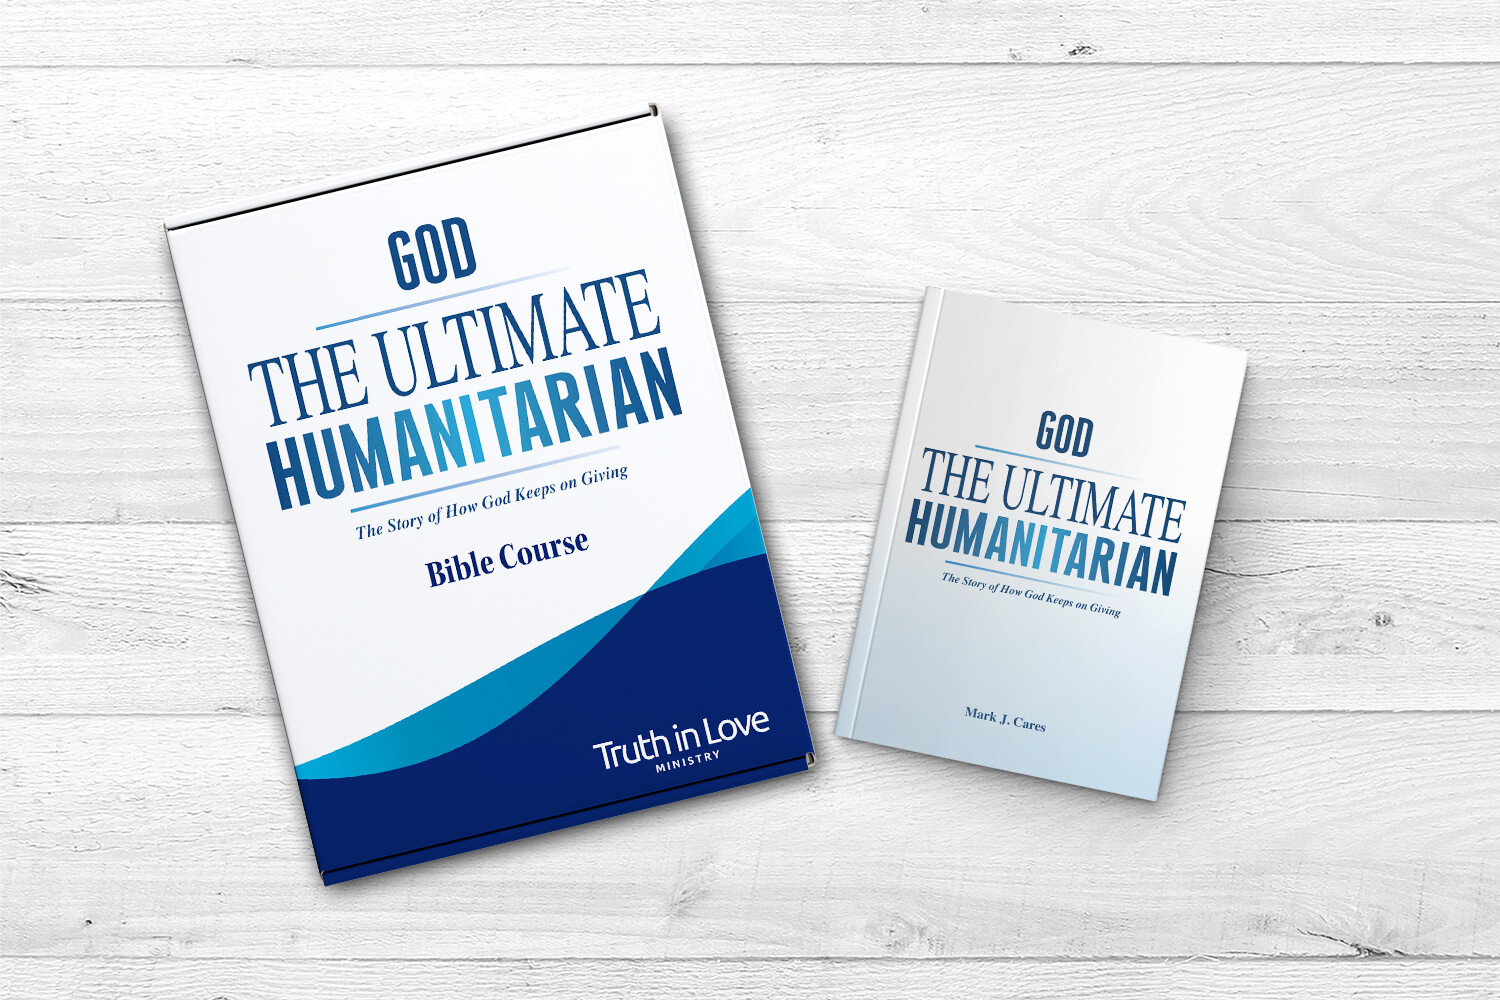 God - The Ultimate Humanitarian Bible Course Kit